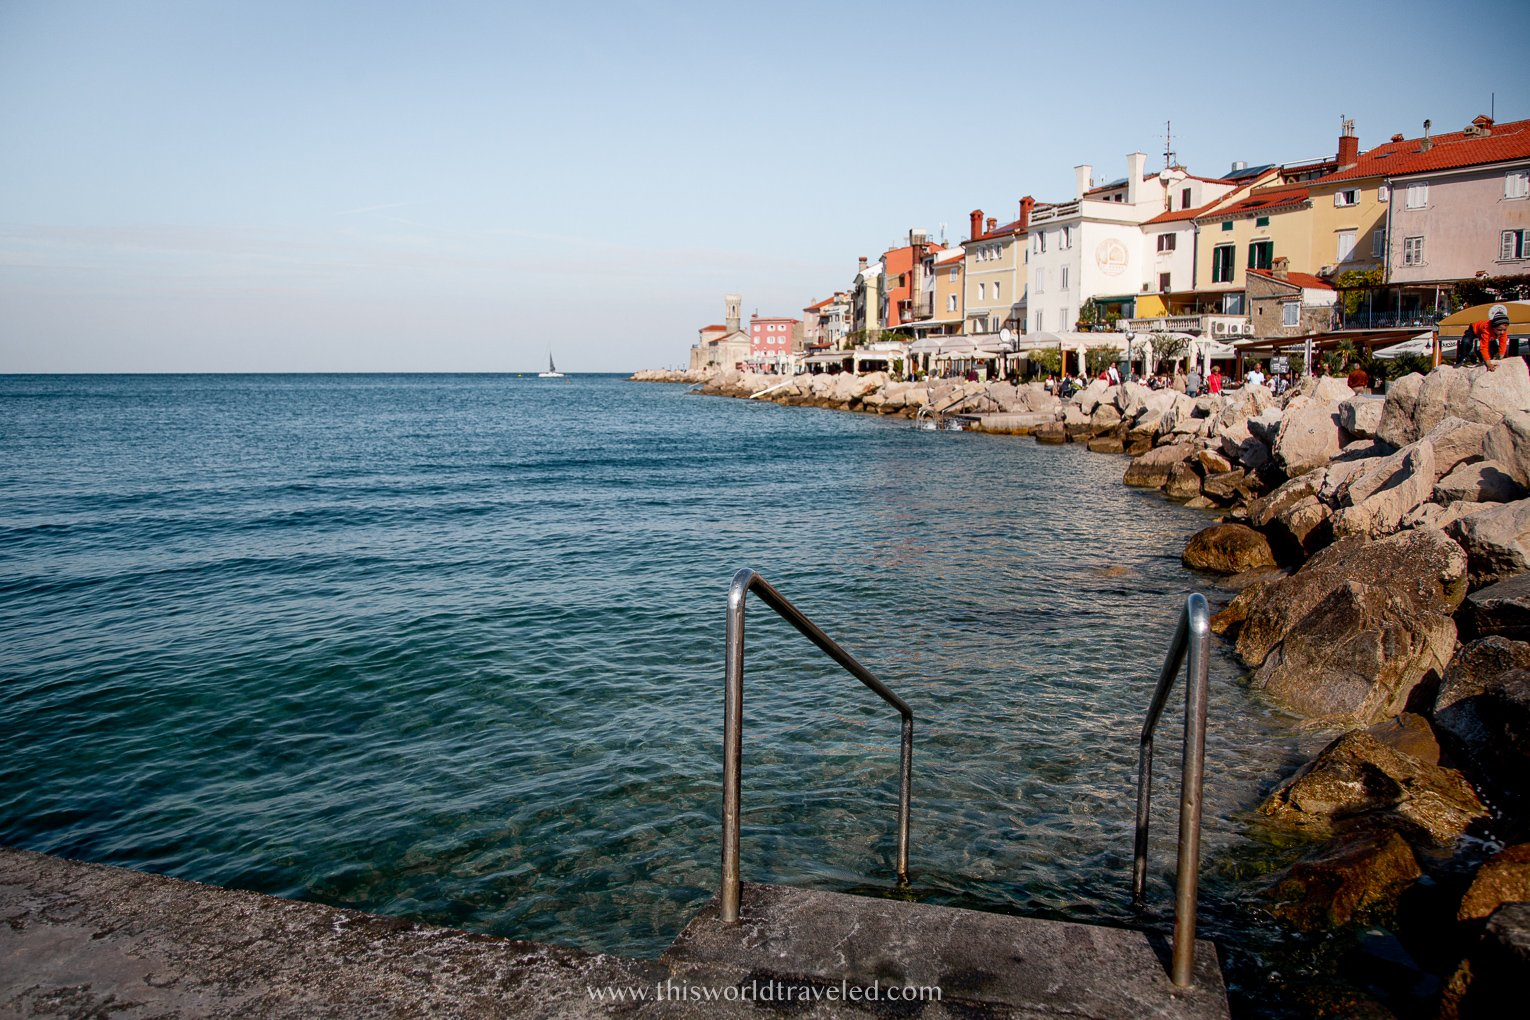 Metal steps leading down into the Adriatic sea alongside large rocks and crystal clear water in Piran, Slovenia